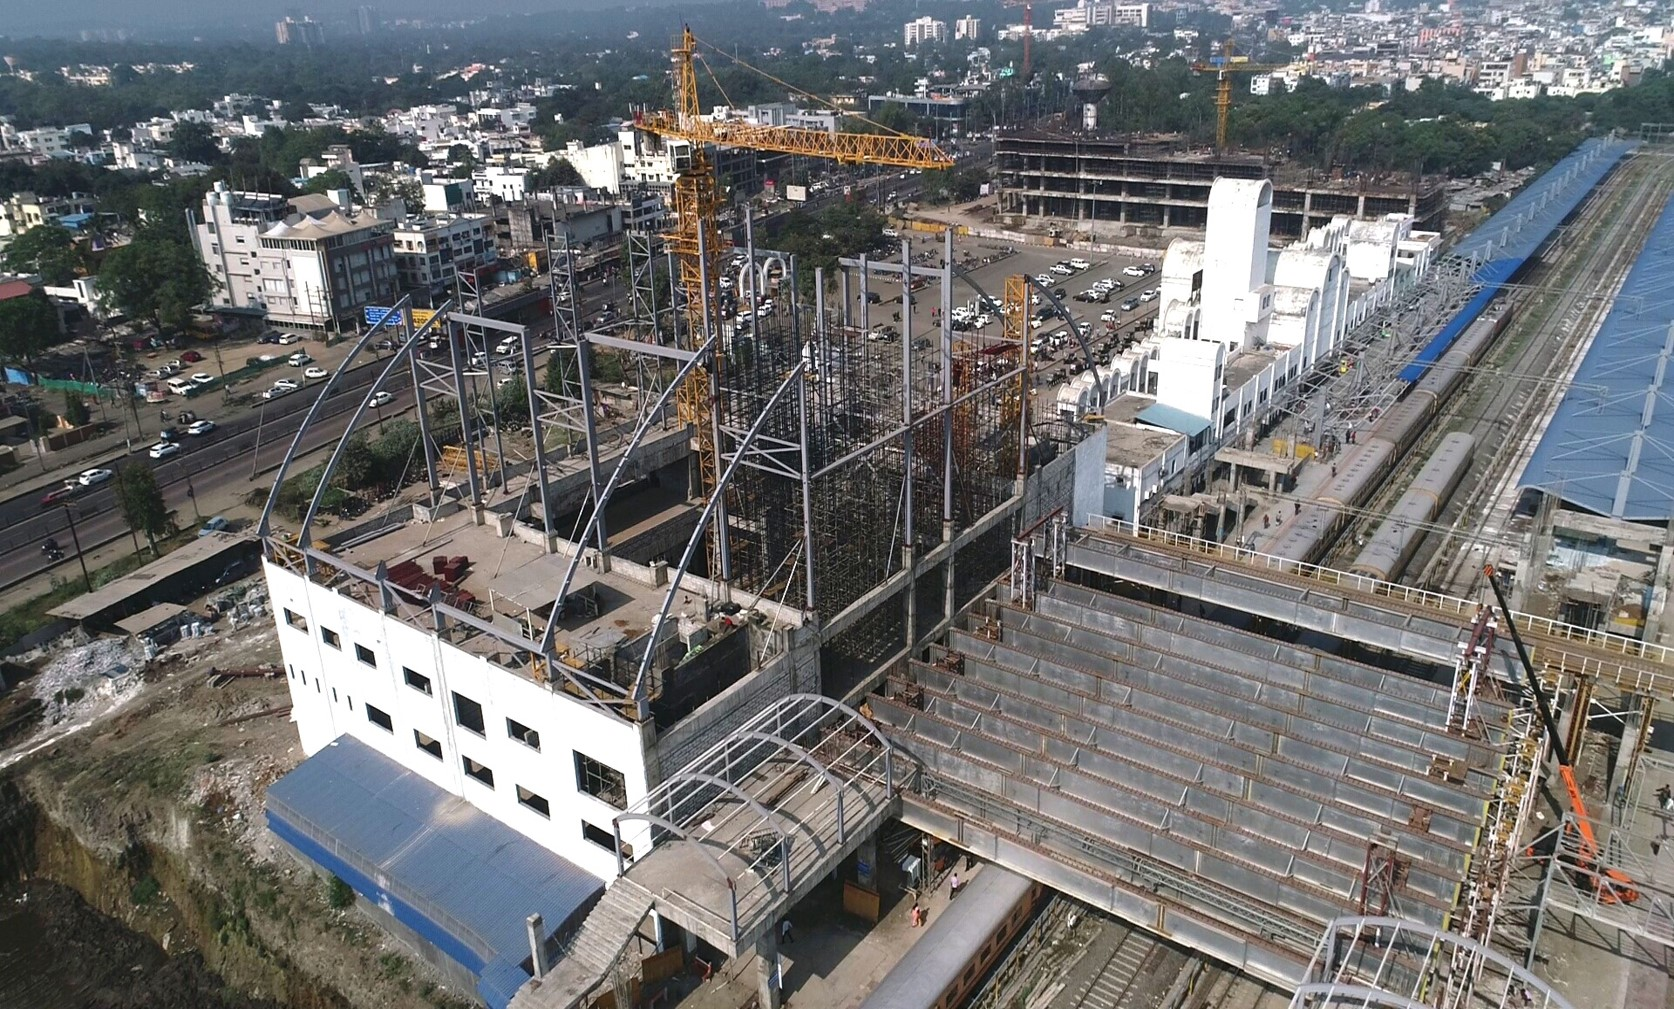 West building Dome erection, PF1 balance COP structure complete, sheeting in progress. Air concours Span 1 girder lowering in progress.  at Habibganj Railway Station